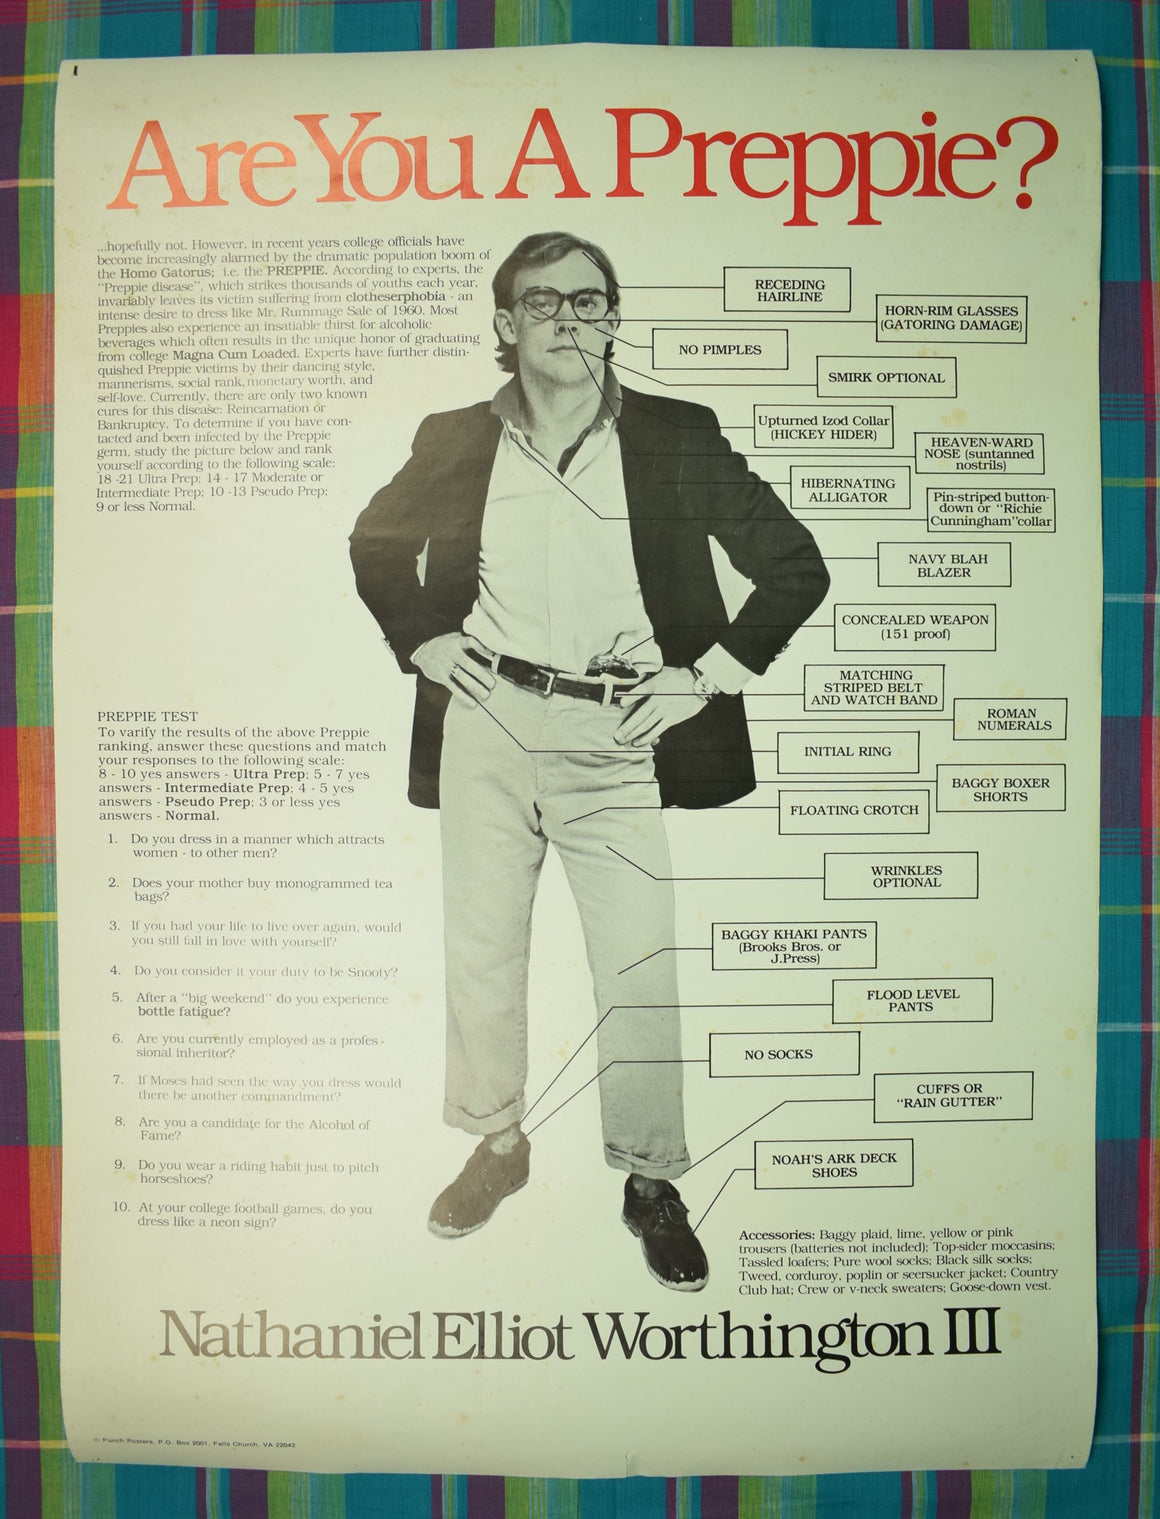 Are You A Preppie? Nathaniel Elliot Worthington III c.1979 Original Poster